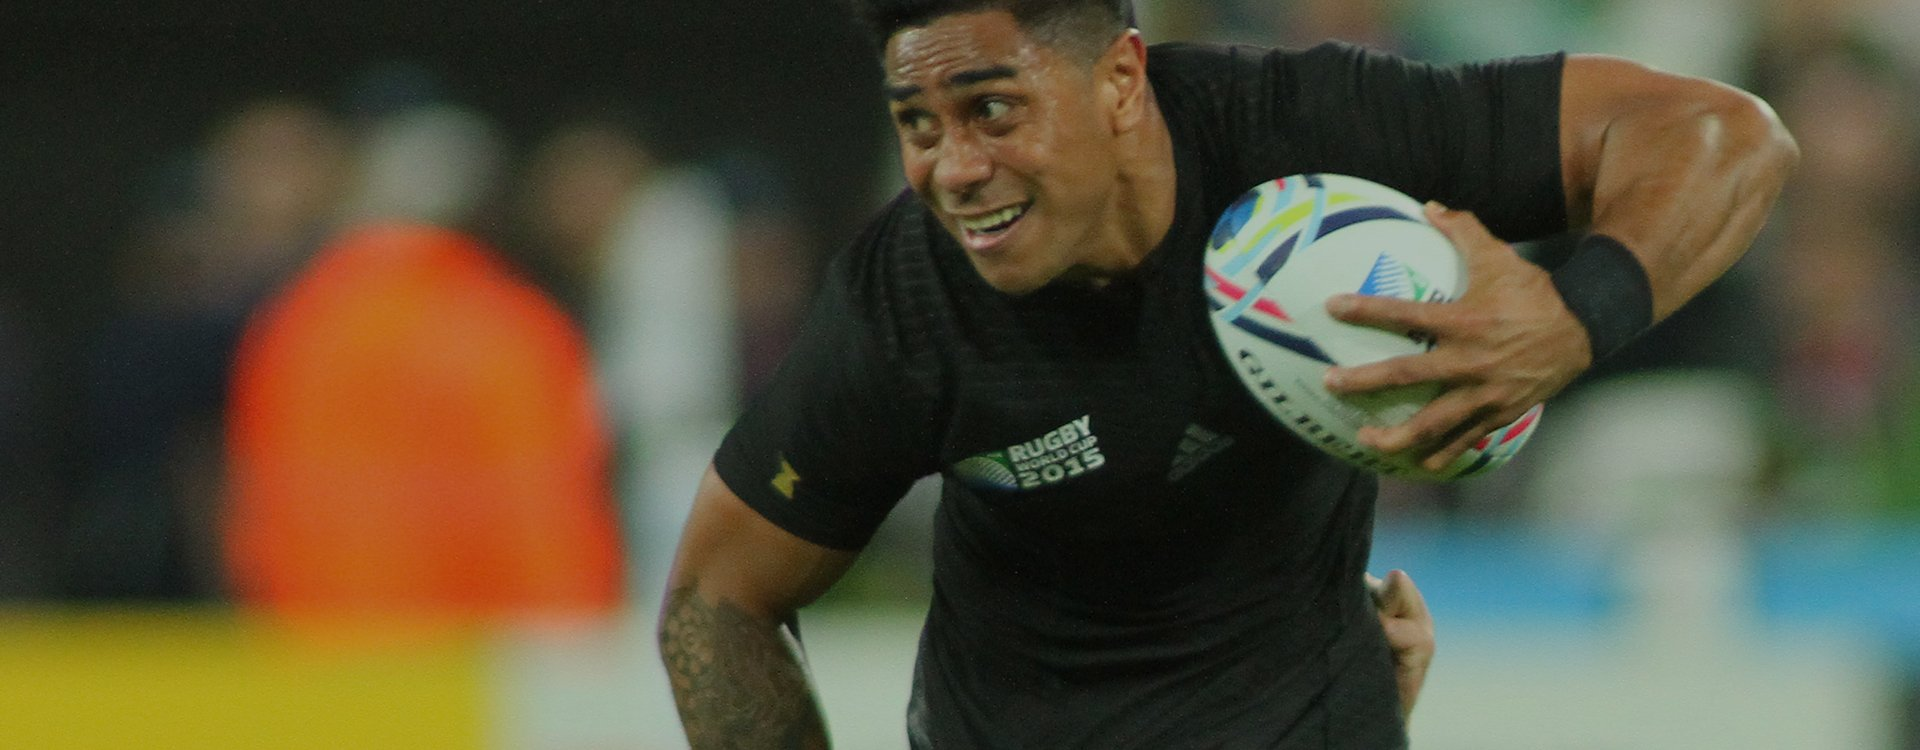 Rugby 101 - A guide to take you through the 2015 Rugby World Cup and beyond